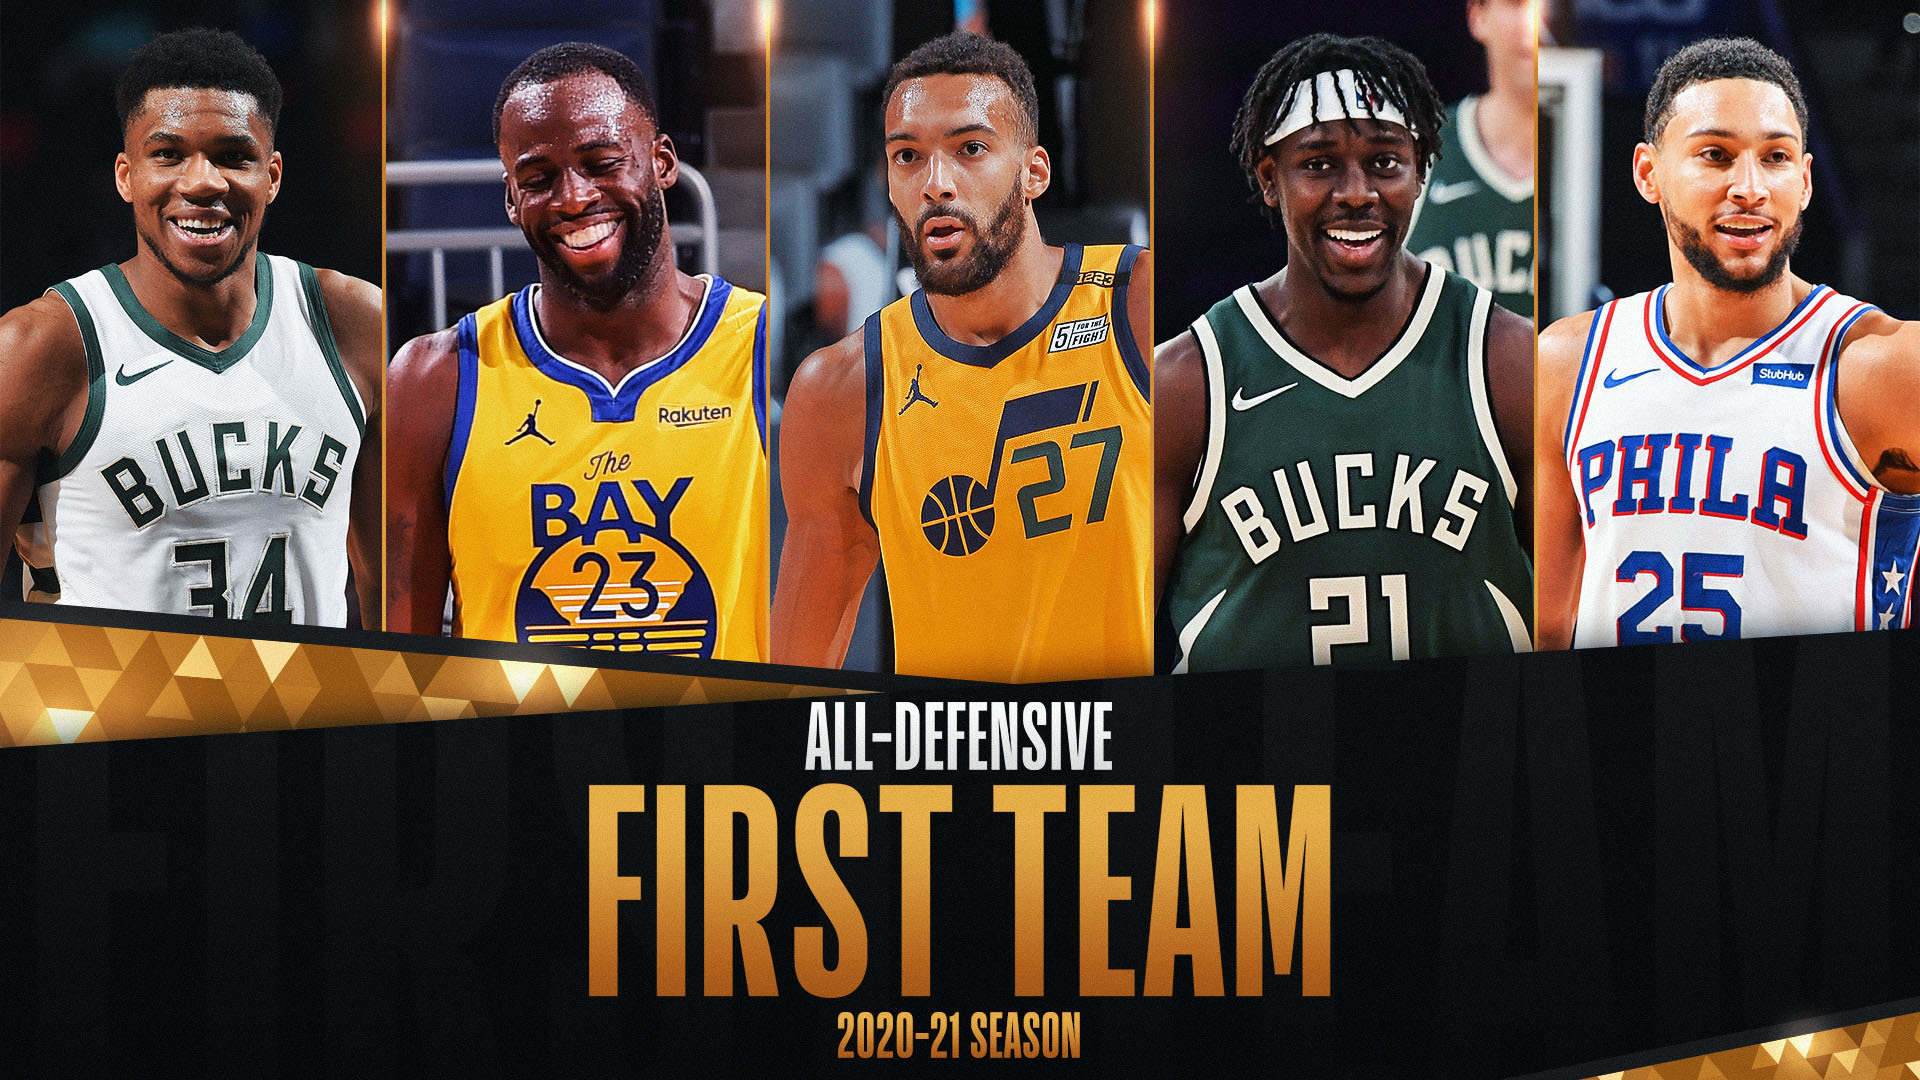 NBA announces 2020-21 All-Defensive First and Second teams